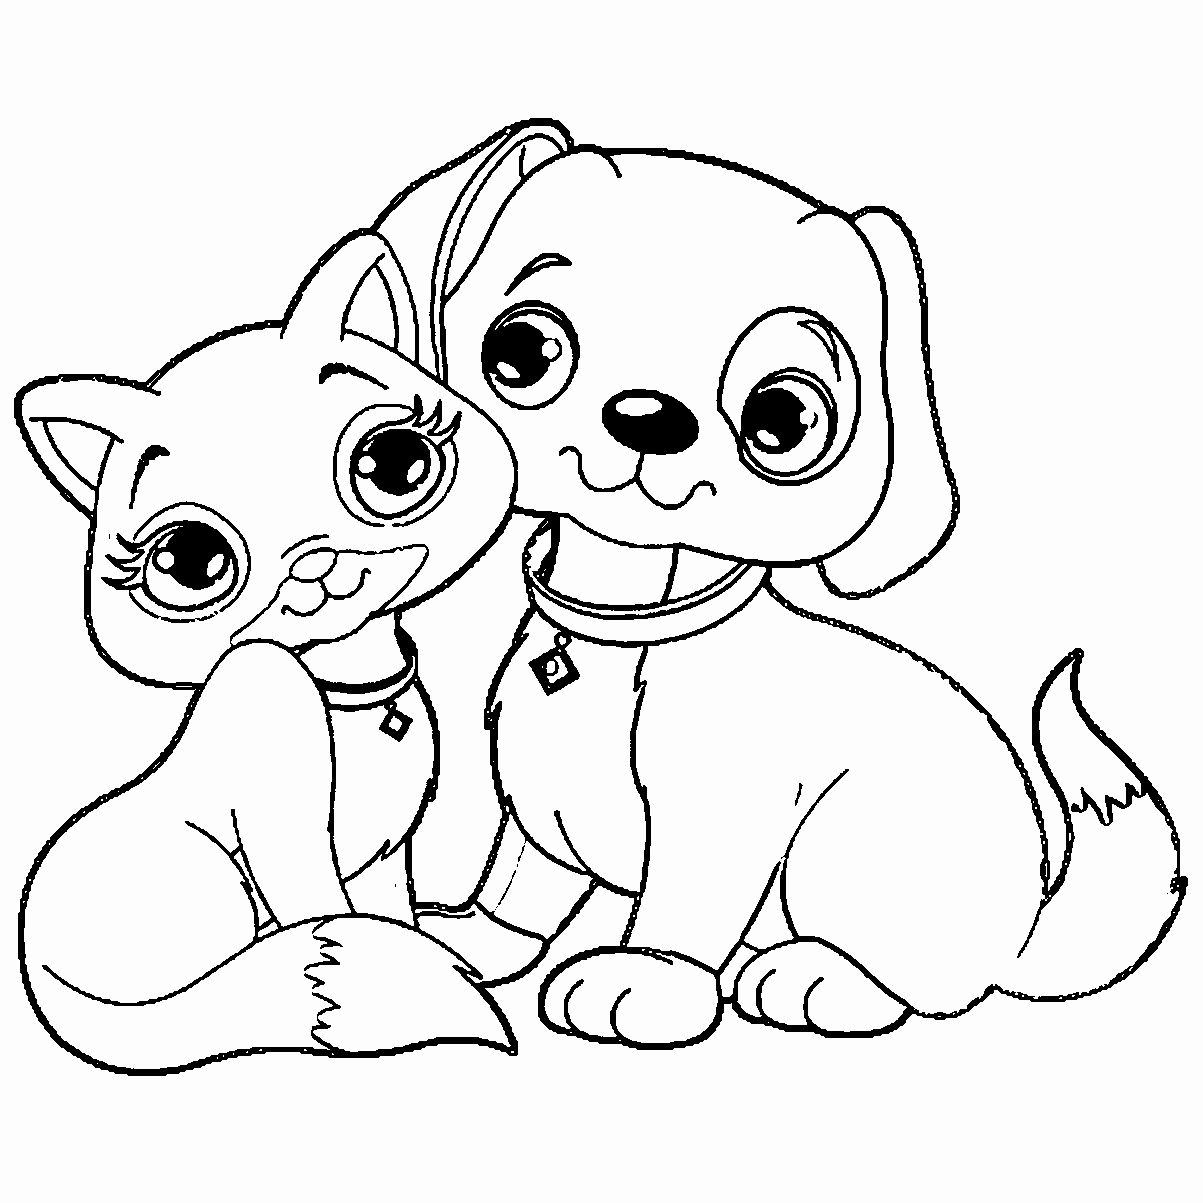 Dog Coloring Pages Pdf Unique Coloring Books Coloring Dog Cat Bird Remarkable And Di 2020 Kawaii Alphabet Penguin